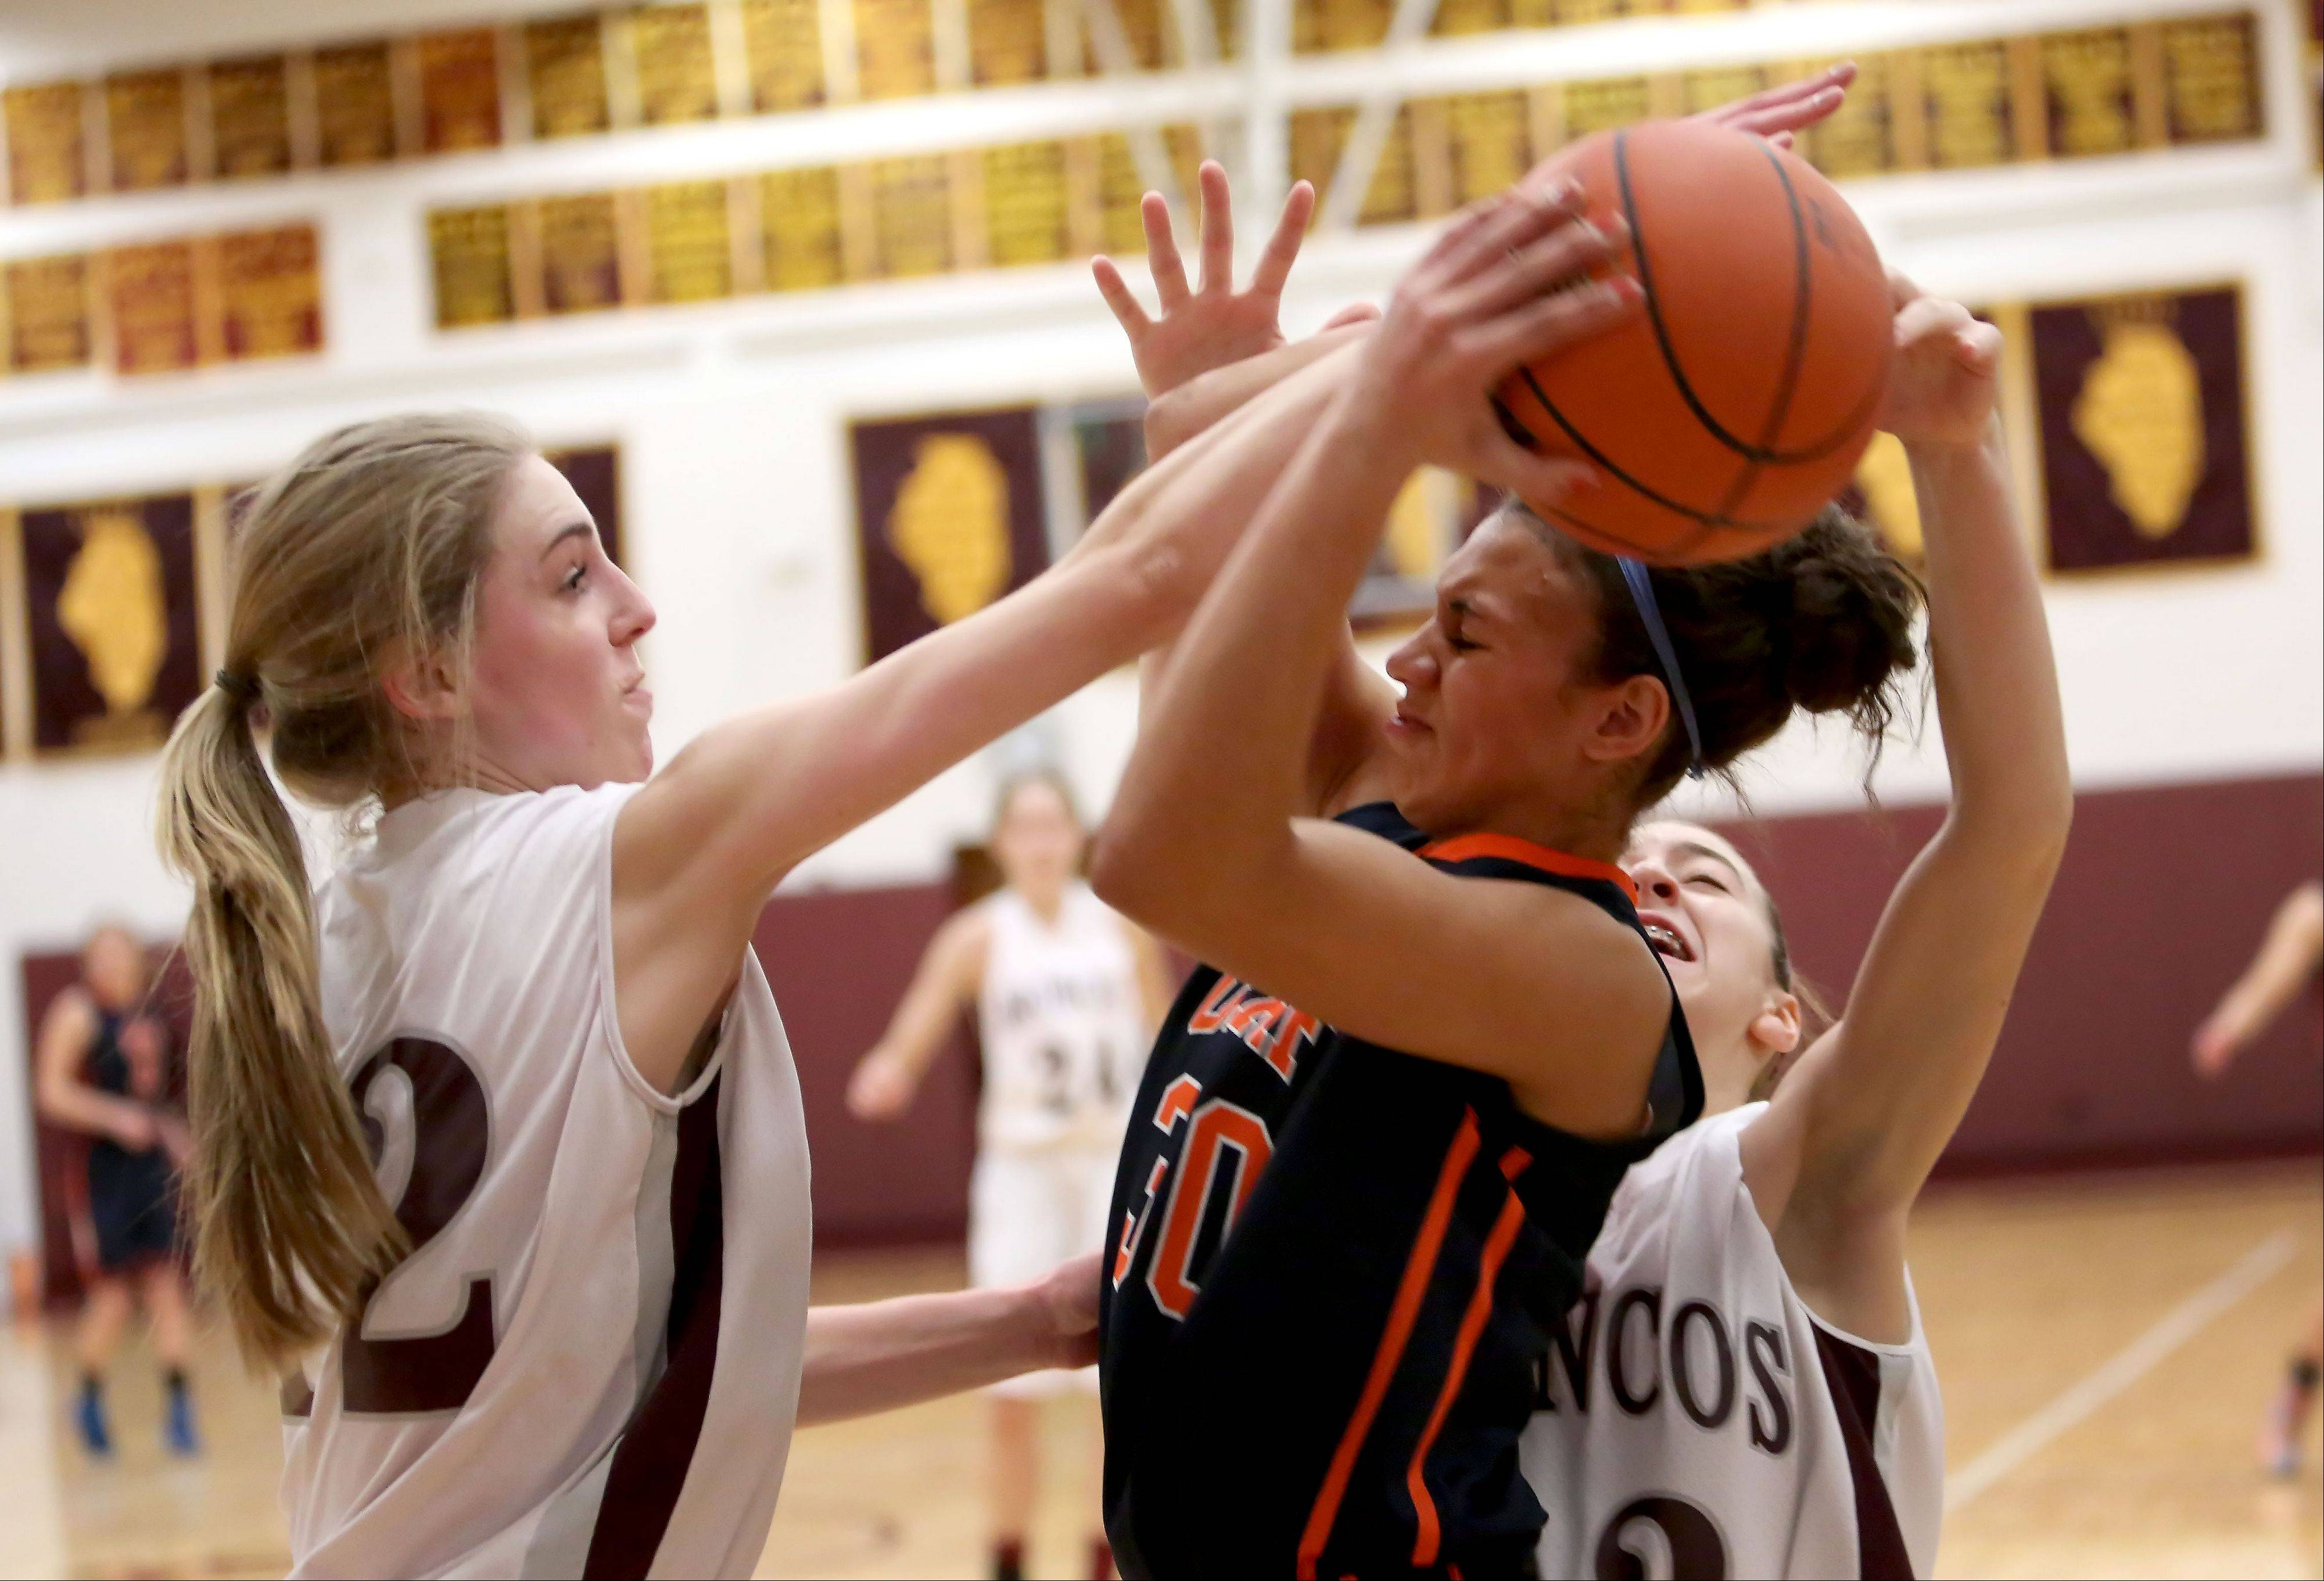 Kelly Karlis, left, and Claudia Kunzer, right, of Montini put the pressure on Chardonnay Harris of Oak Park River Forest in the Montini Catholic High School Girls Basketball Christmas Tournament on Monday in Lombard.